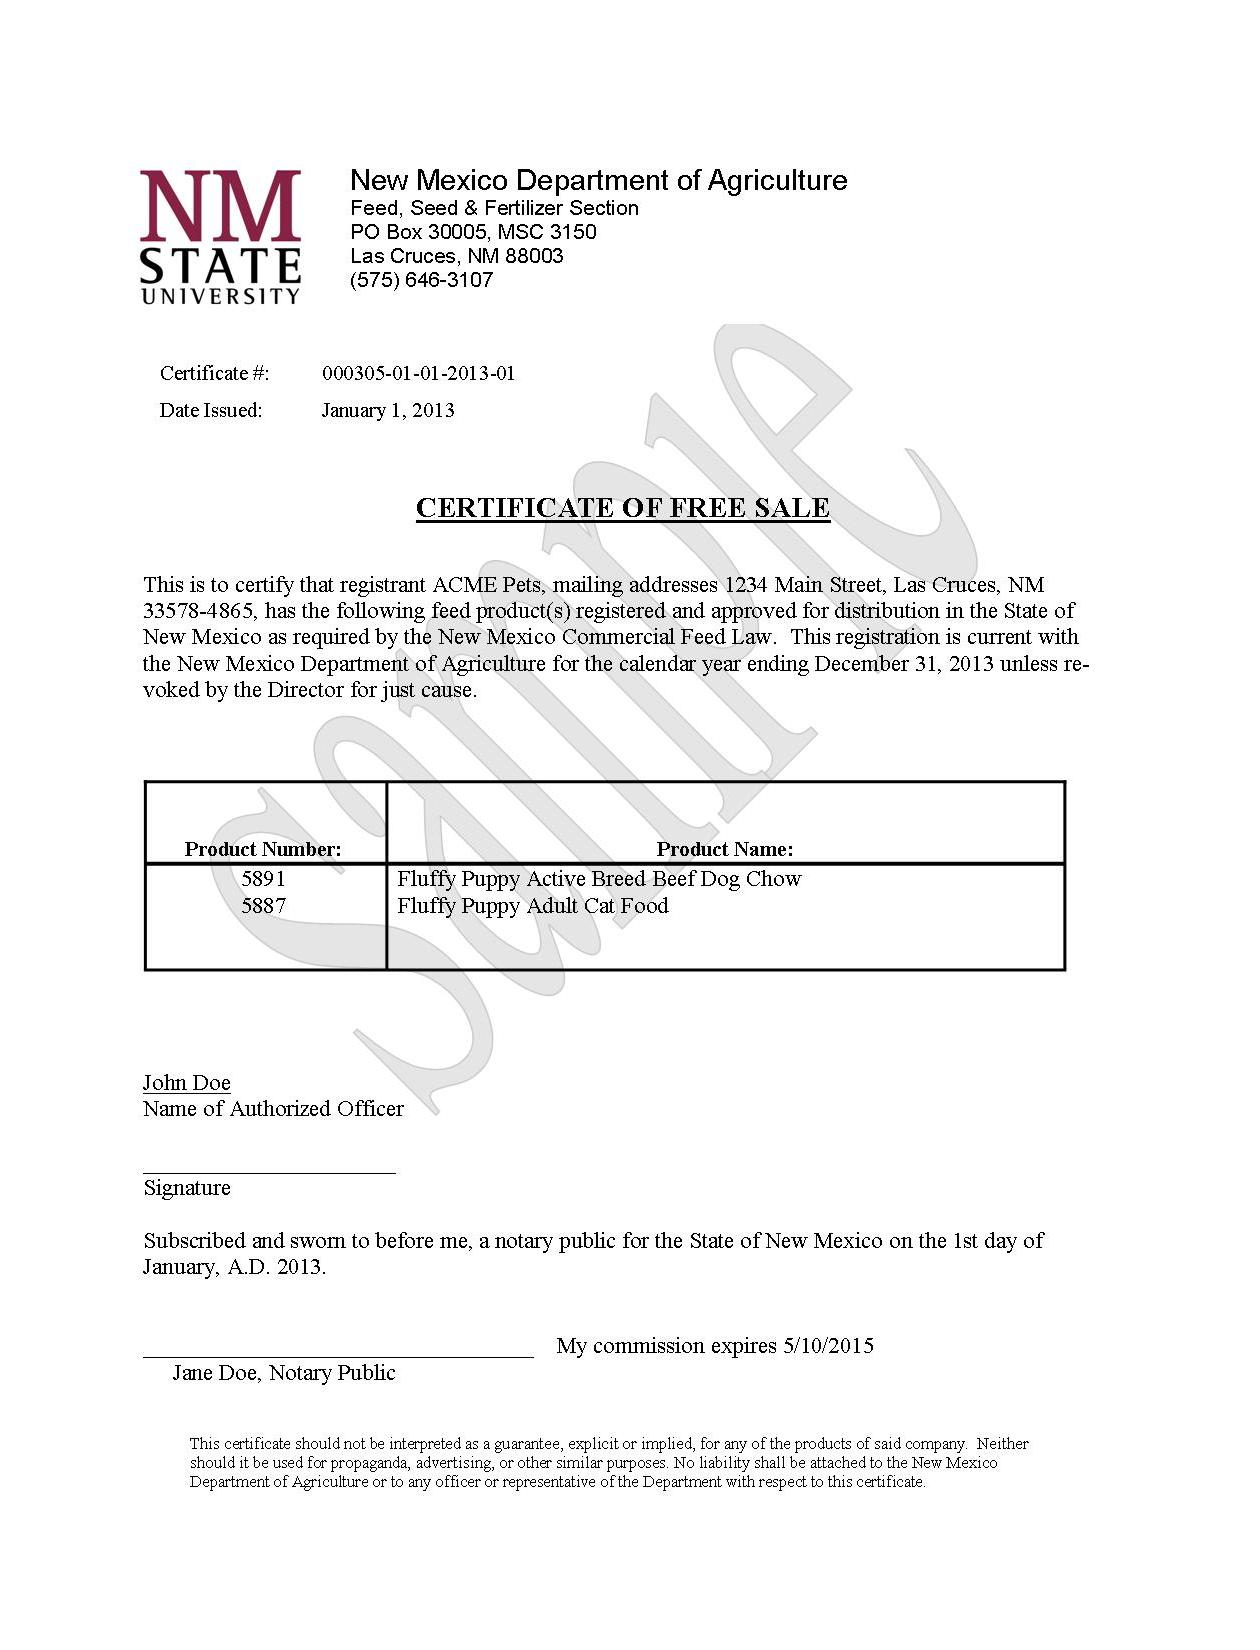 Certificates Of Free Sale